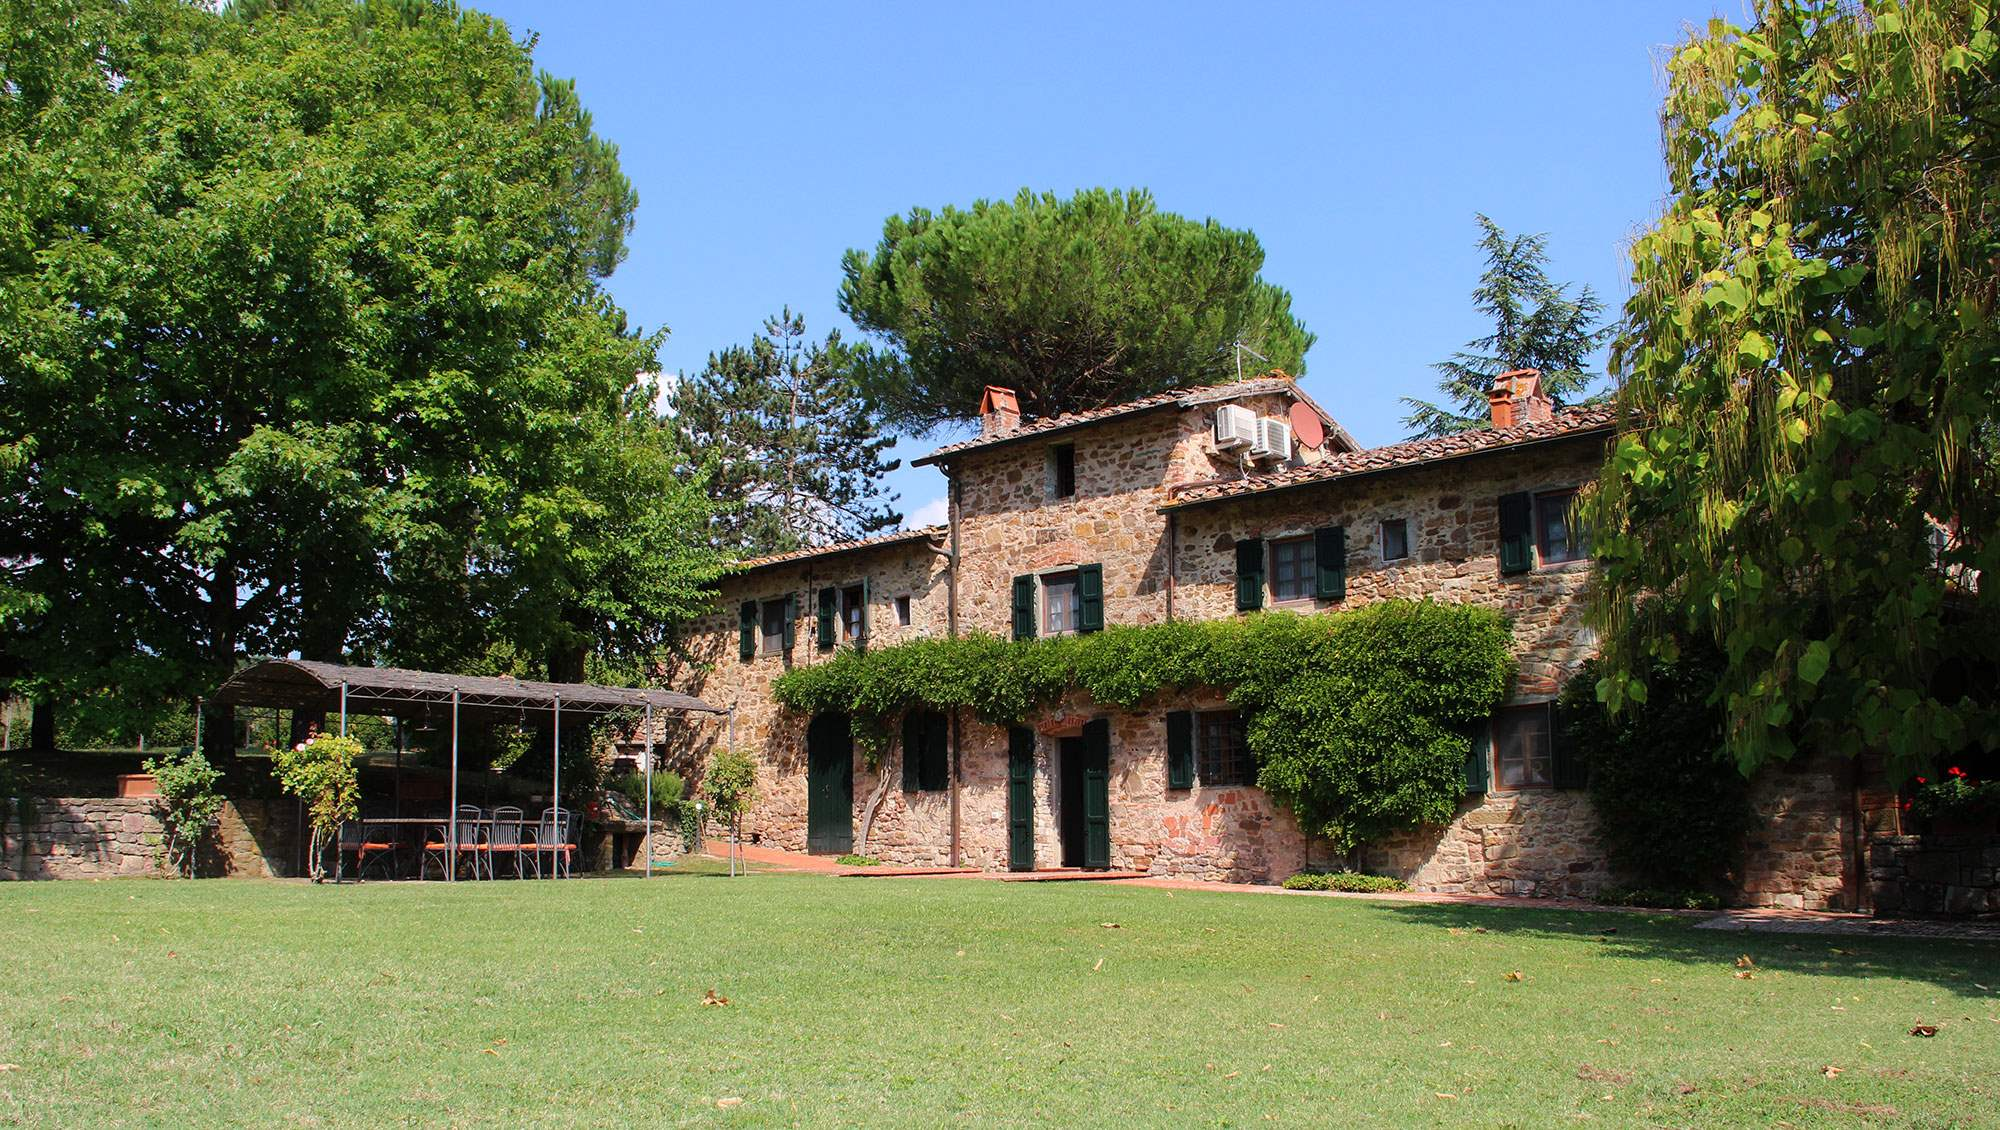 Villa Felicita, Main house only, 6 persons rate, 3 bedroom villa in Chianti & Countryside, Tuscany Photo #2